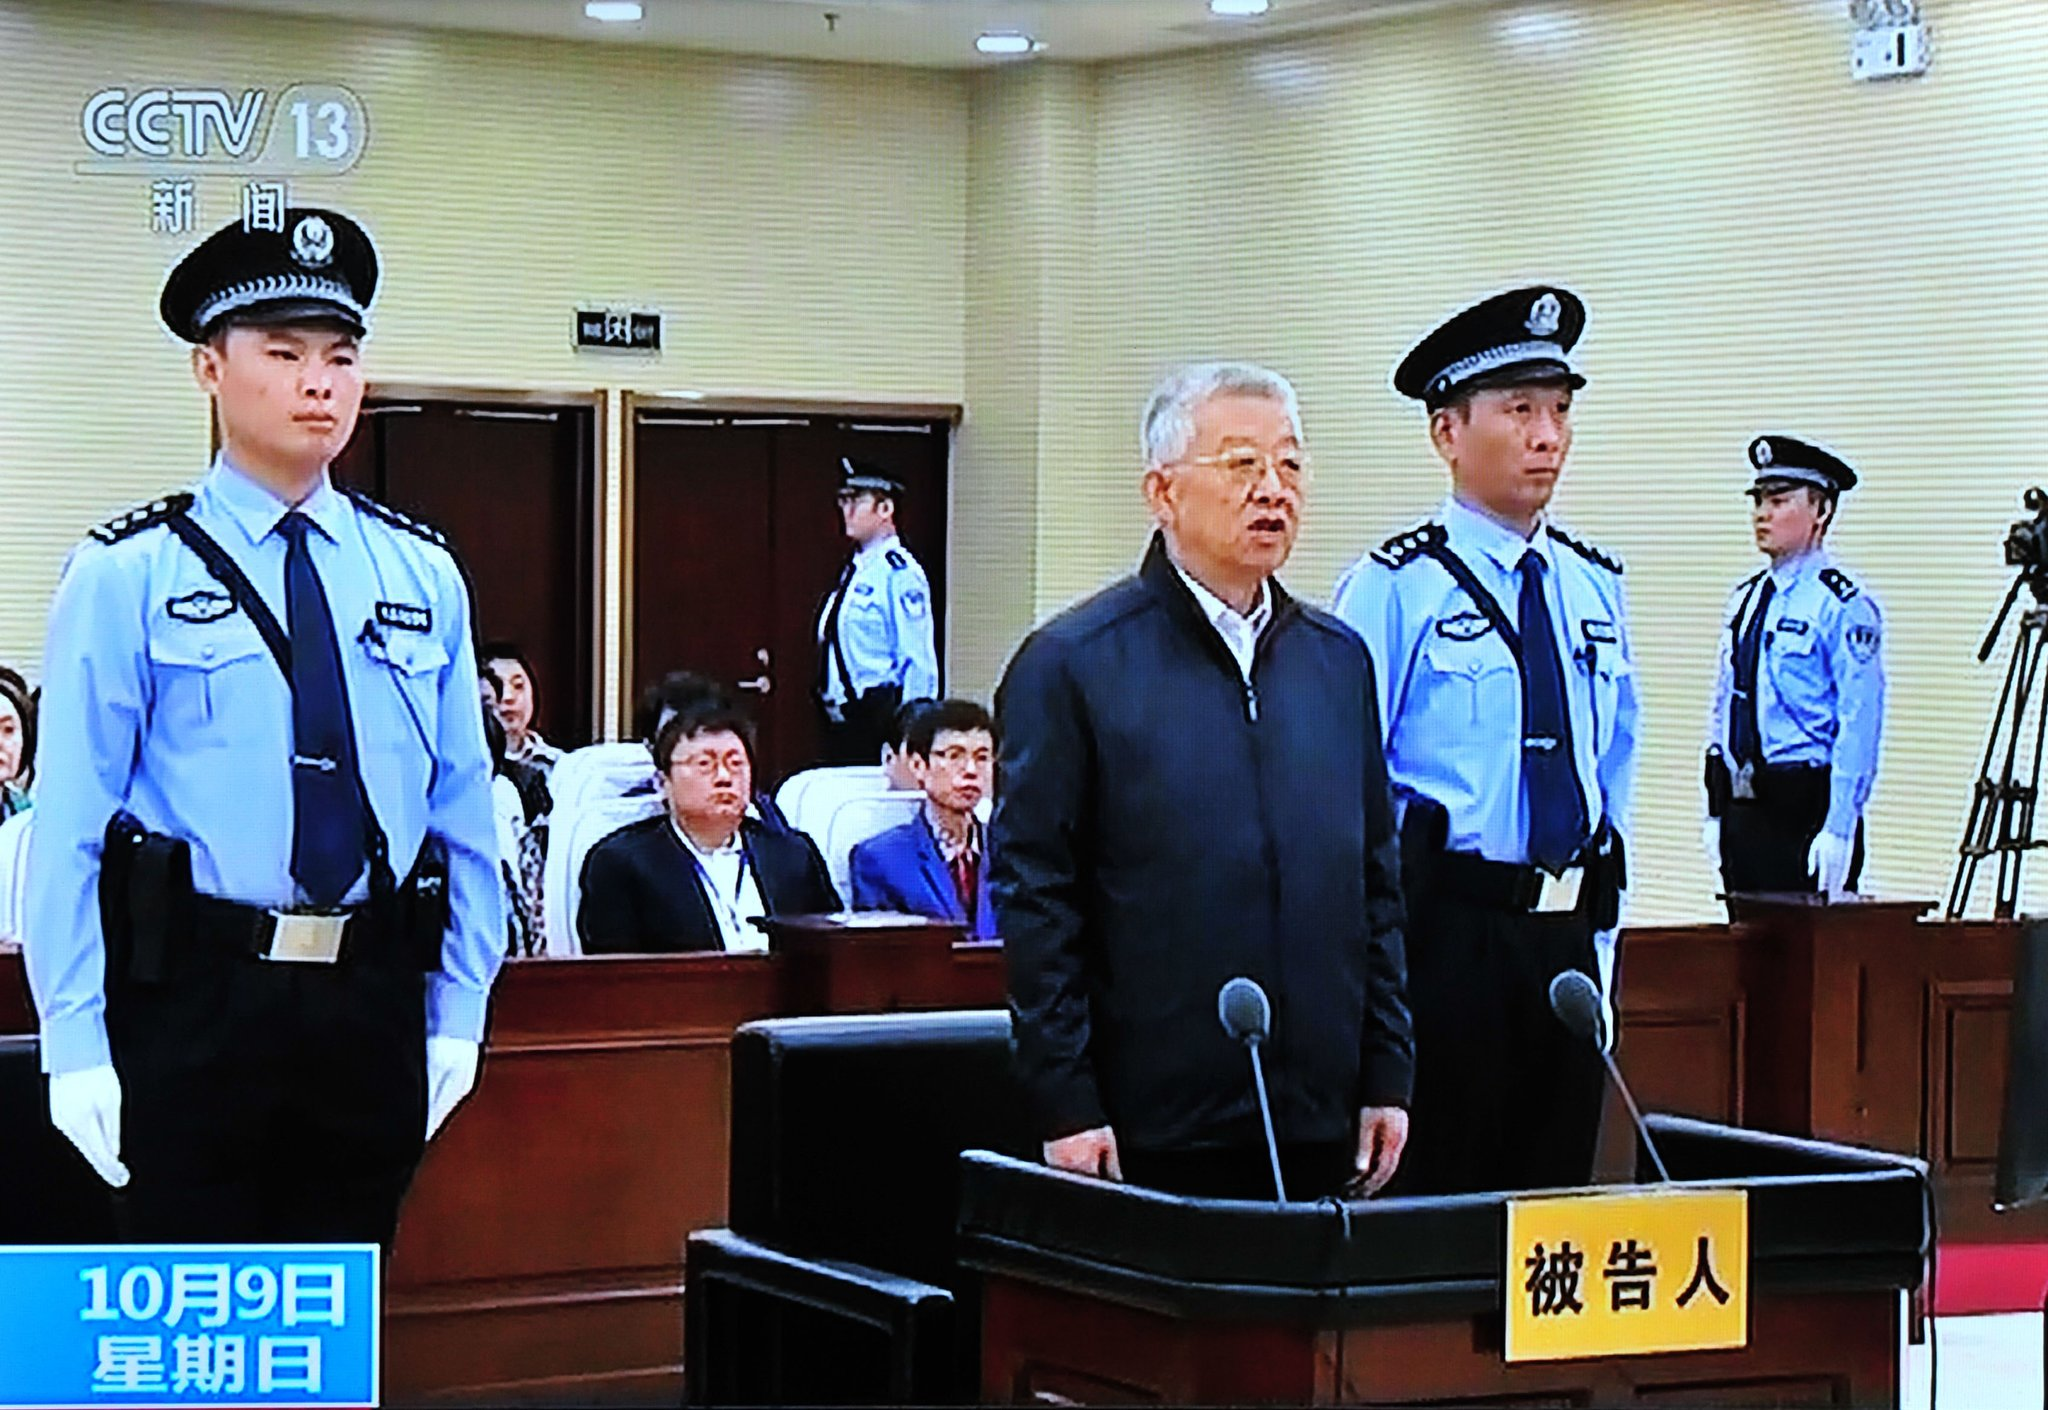 New Chinese State TV Series Unveils Graft Secrets